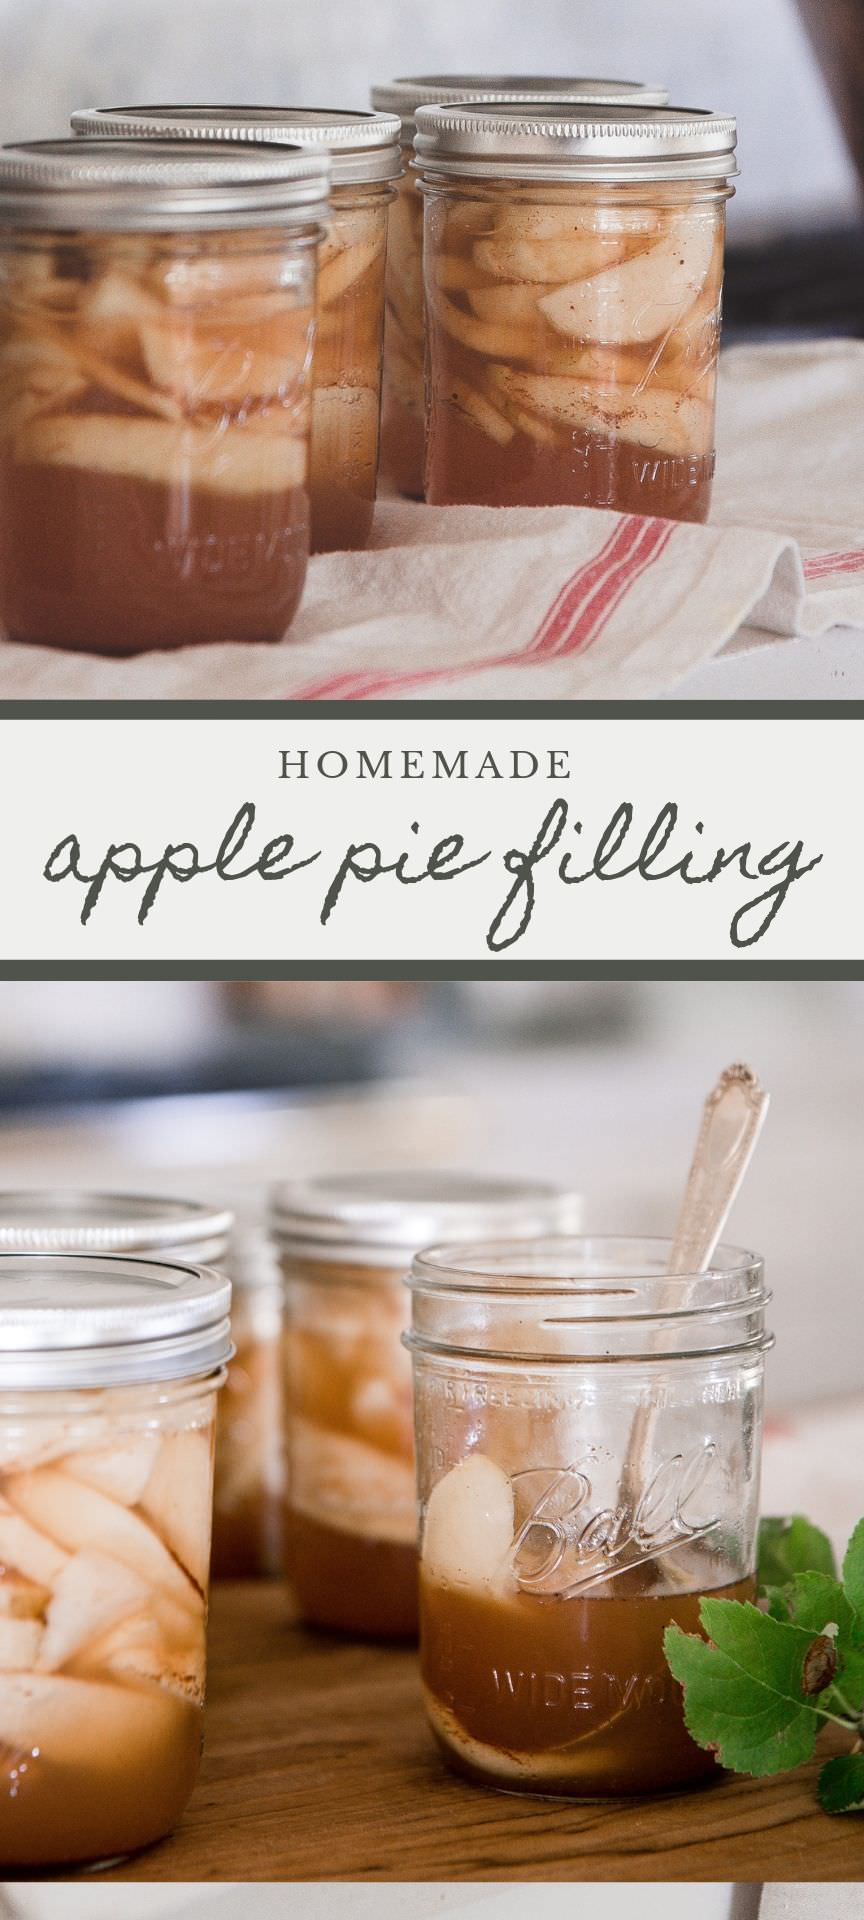 Homemade apple pie filling is easy to preserve! Make the most of your apples with this homemade apple pie filing recipe!  #ballhomecanning #applerecipes #applepie #partner